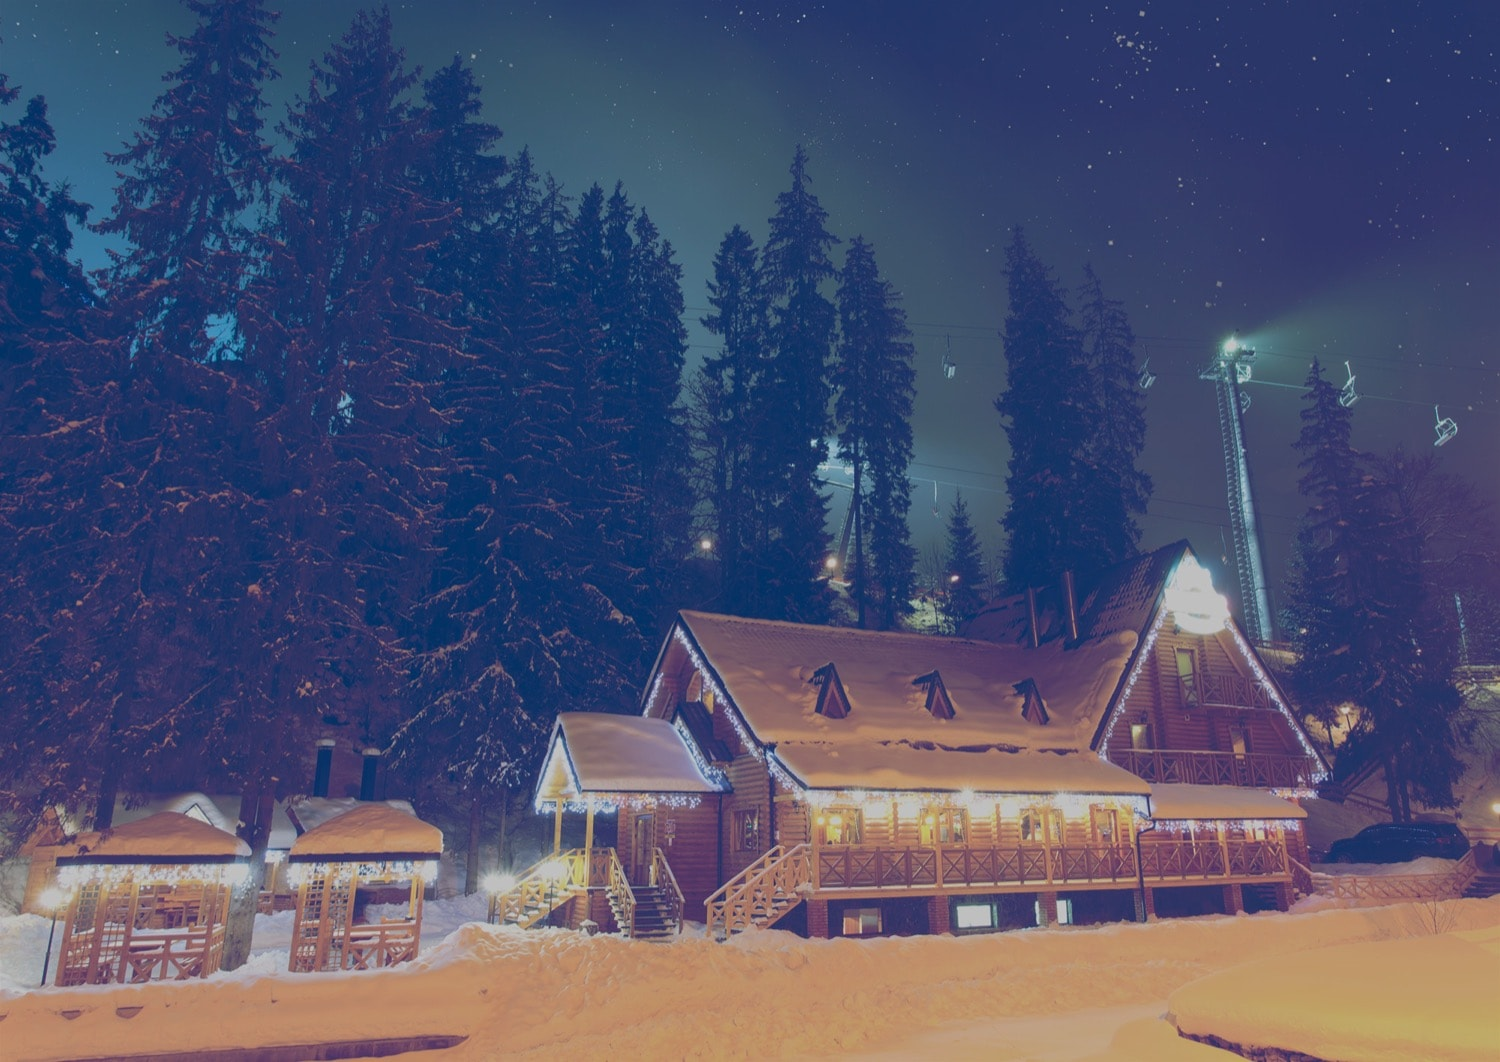 Ski Chalet and lift in the middle of the night, covered in snow.